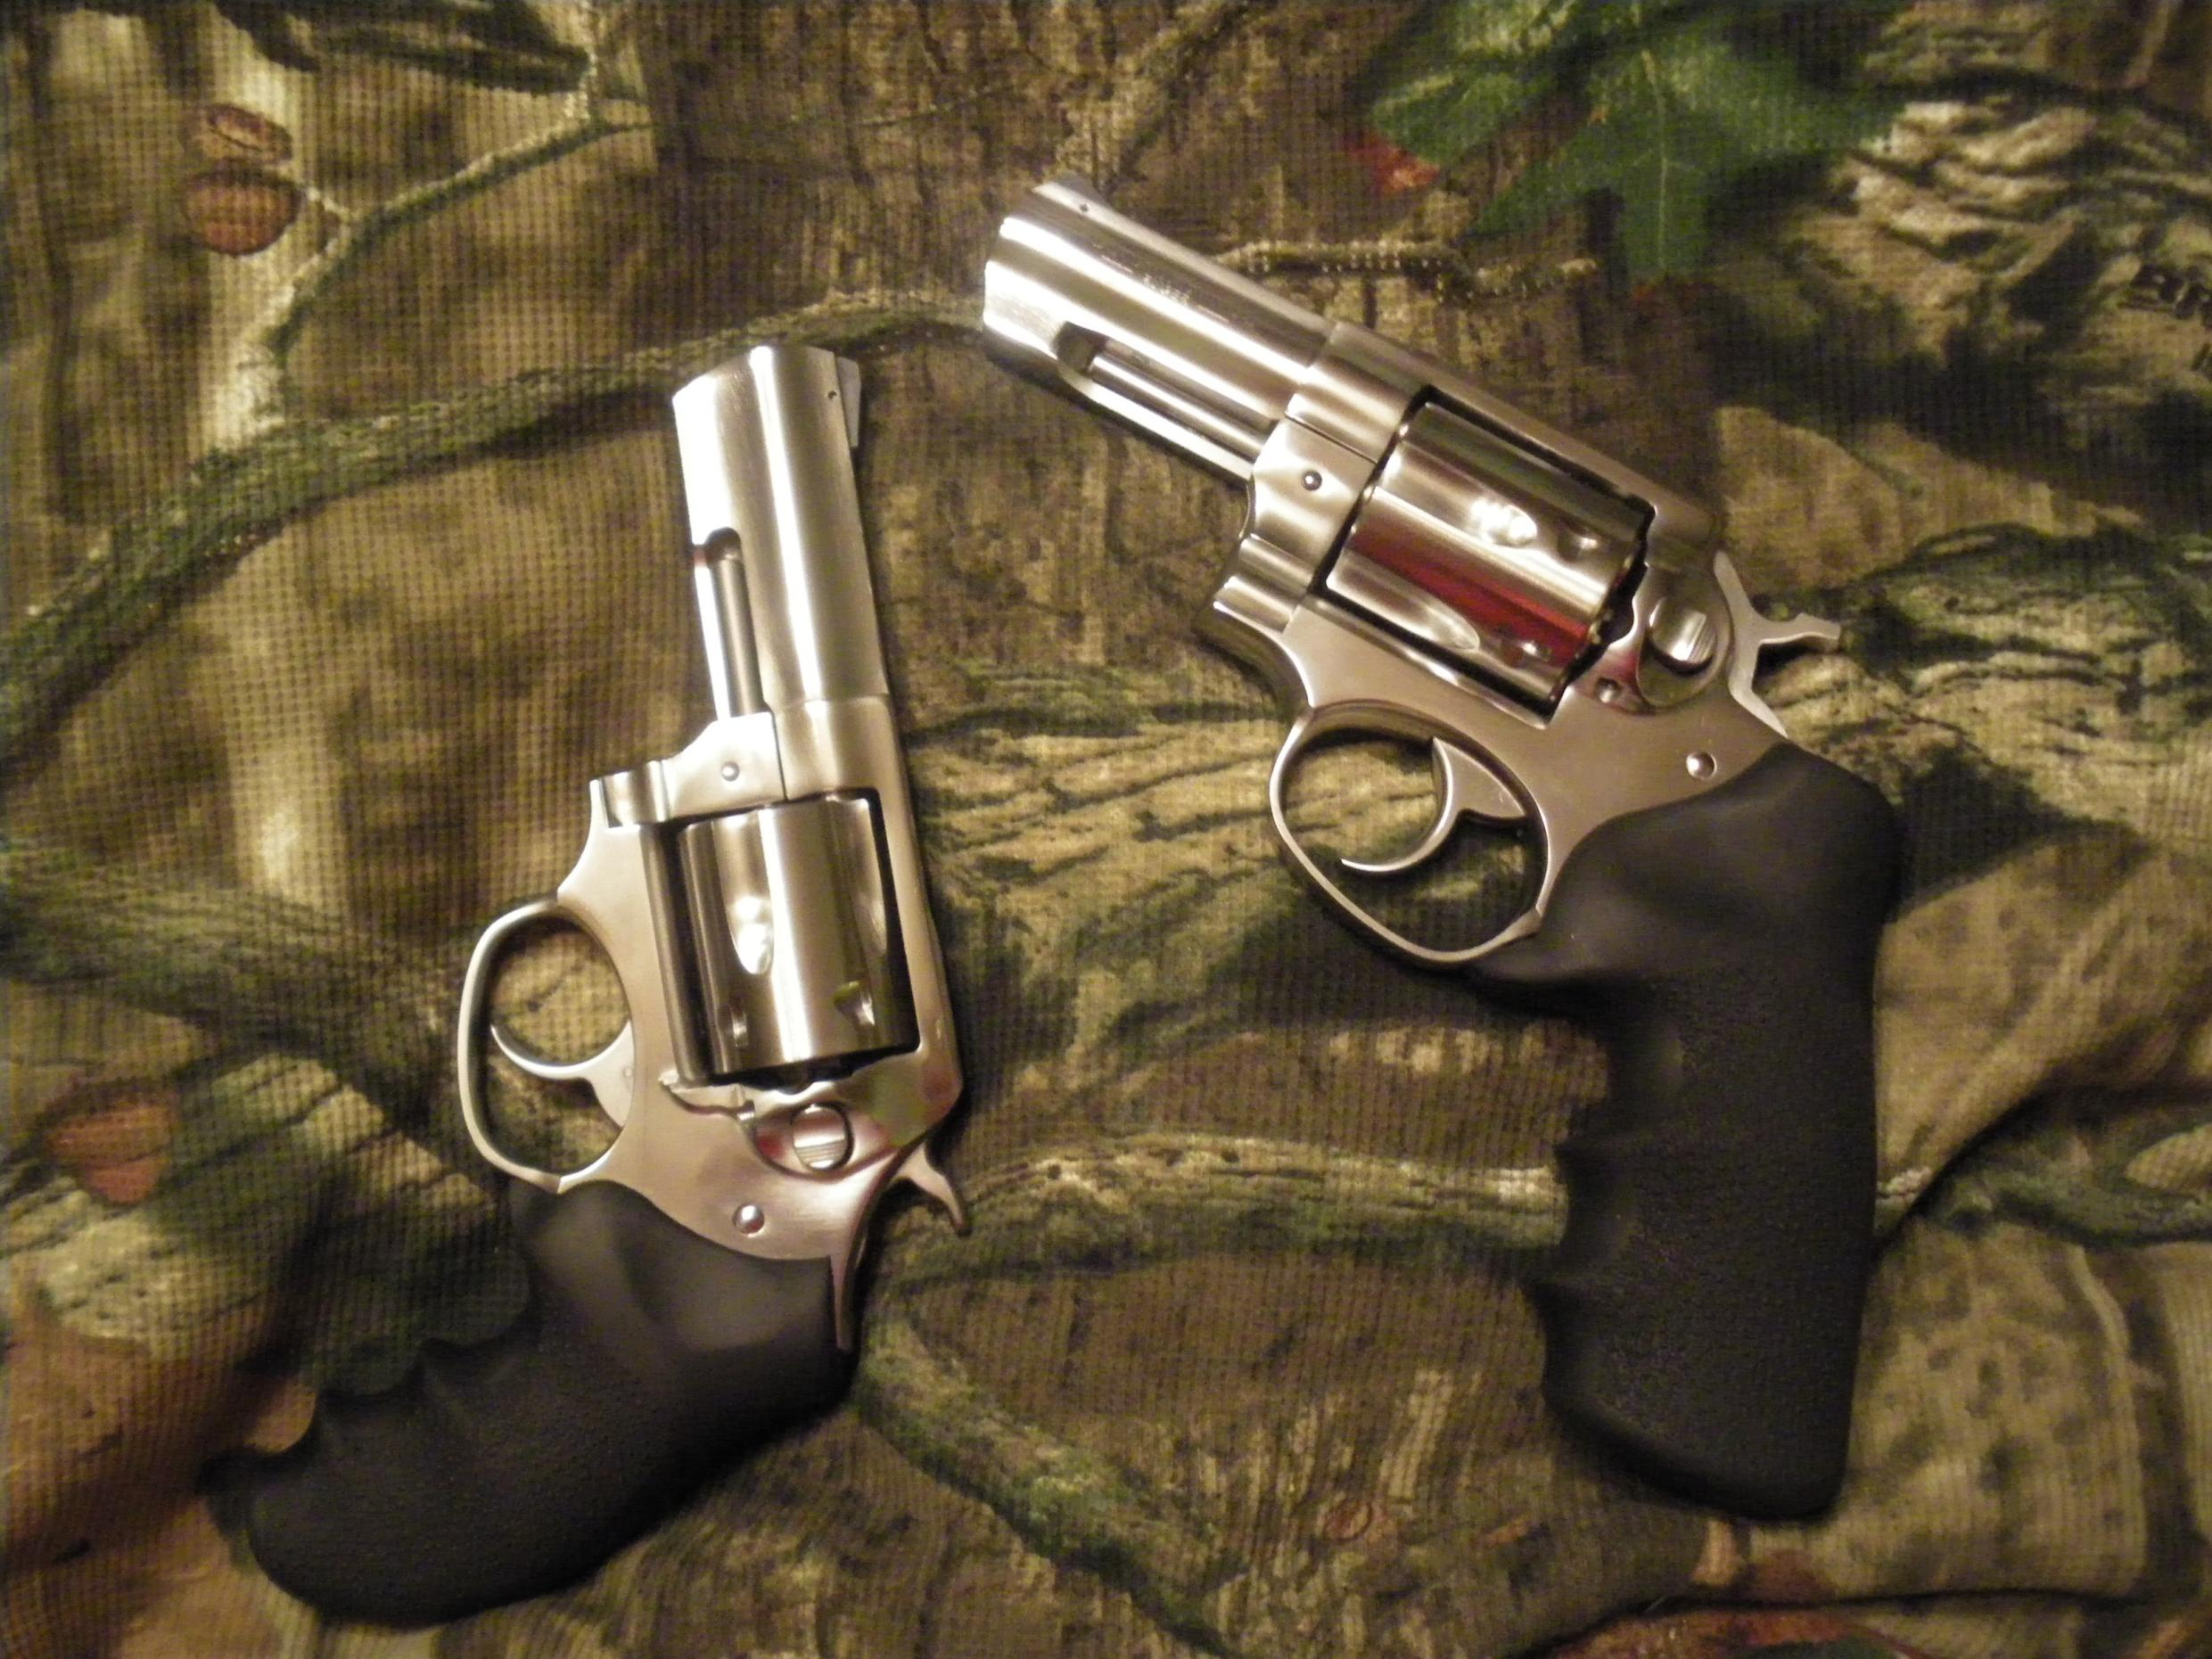 Wheelgun-itis Strikes Again.....New Ruger and a New Carry Blade-2012-10-16-09.44.31.jpg